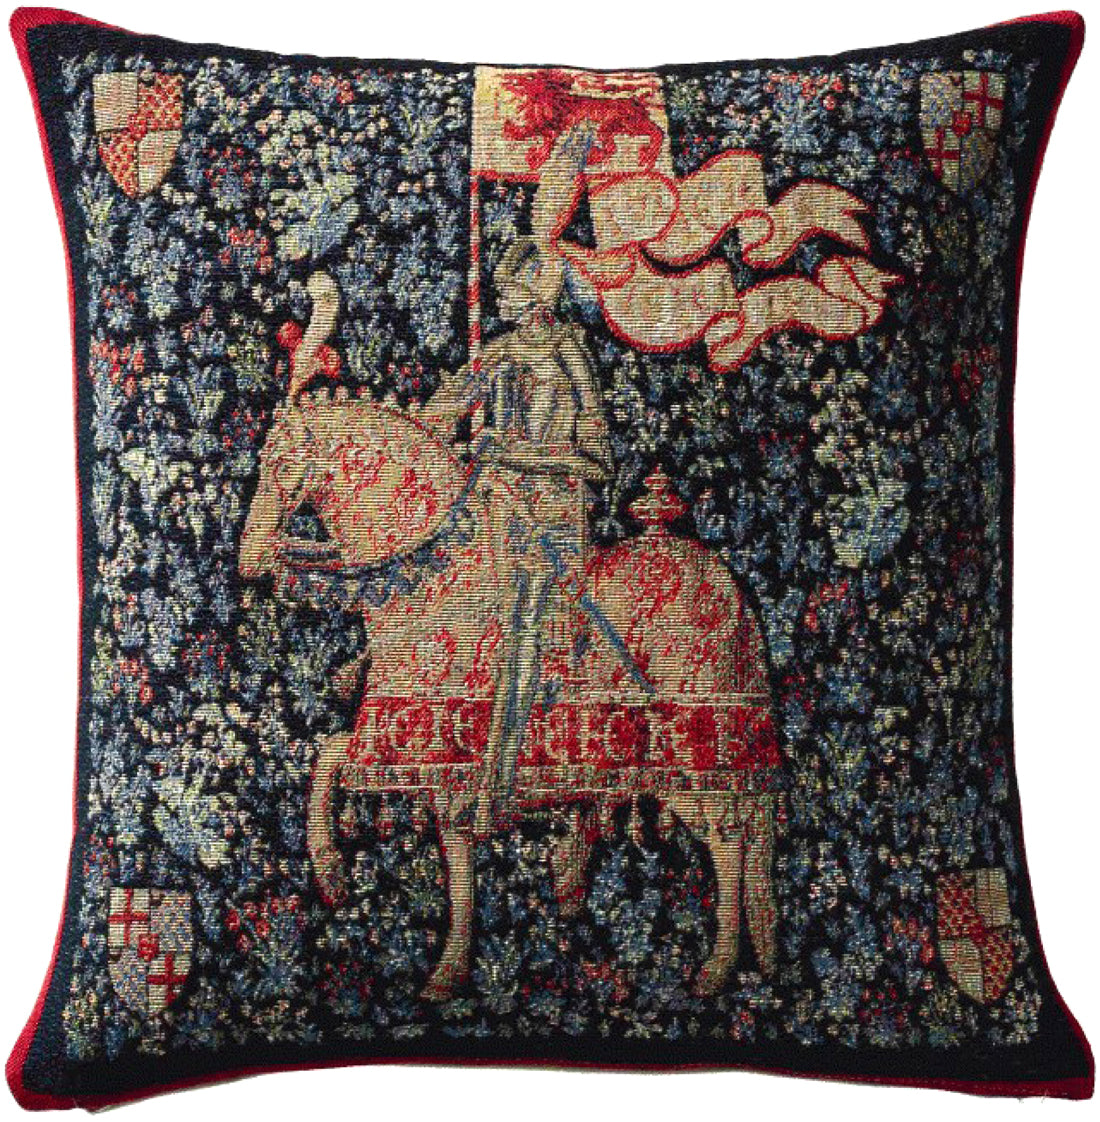 The Knight French Tapestry Cushion